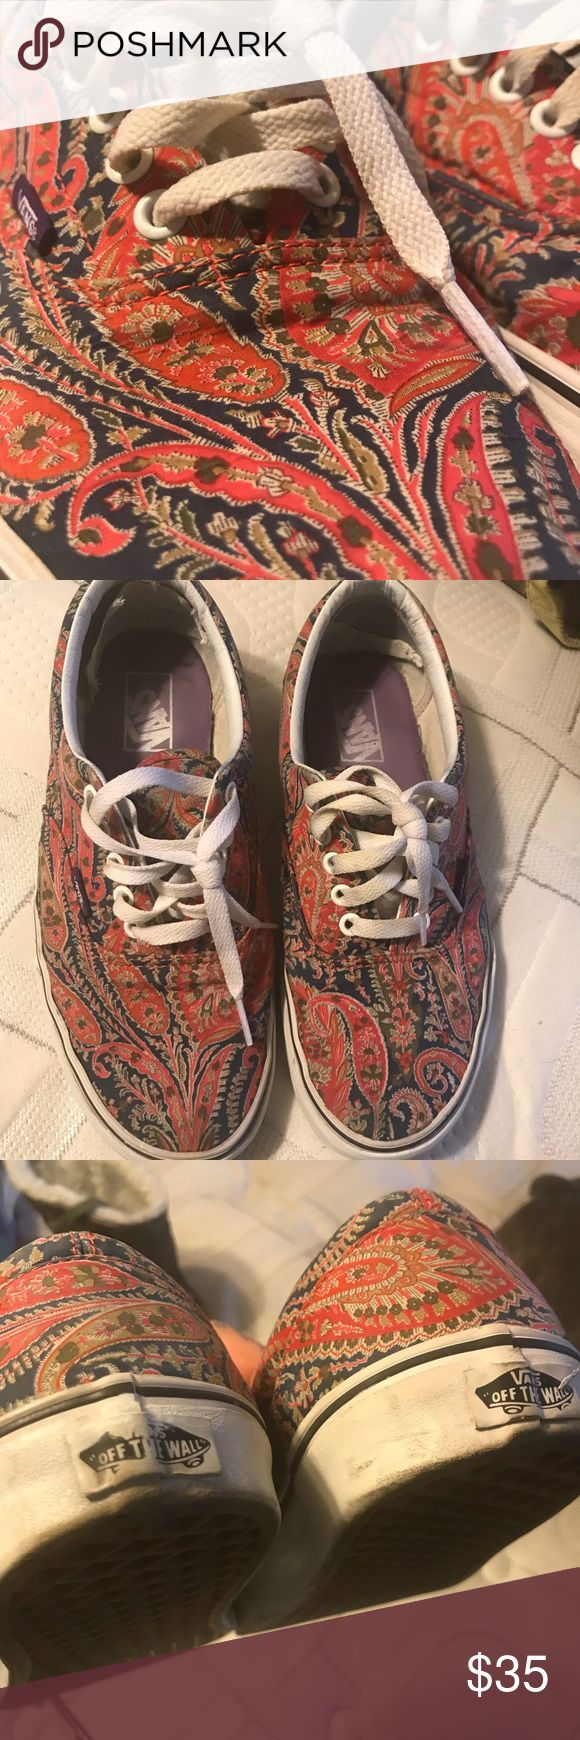 VANS X LIBERTY COLLABORATION circa 2009 Paisley print liberty fabrics and vans colab Circa 2009 Gently loved, great price for the collector Vans Shoes Sneakers